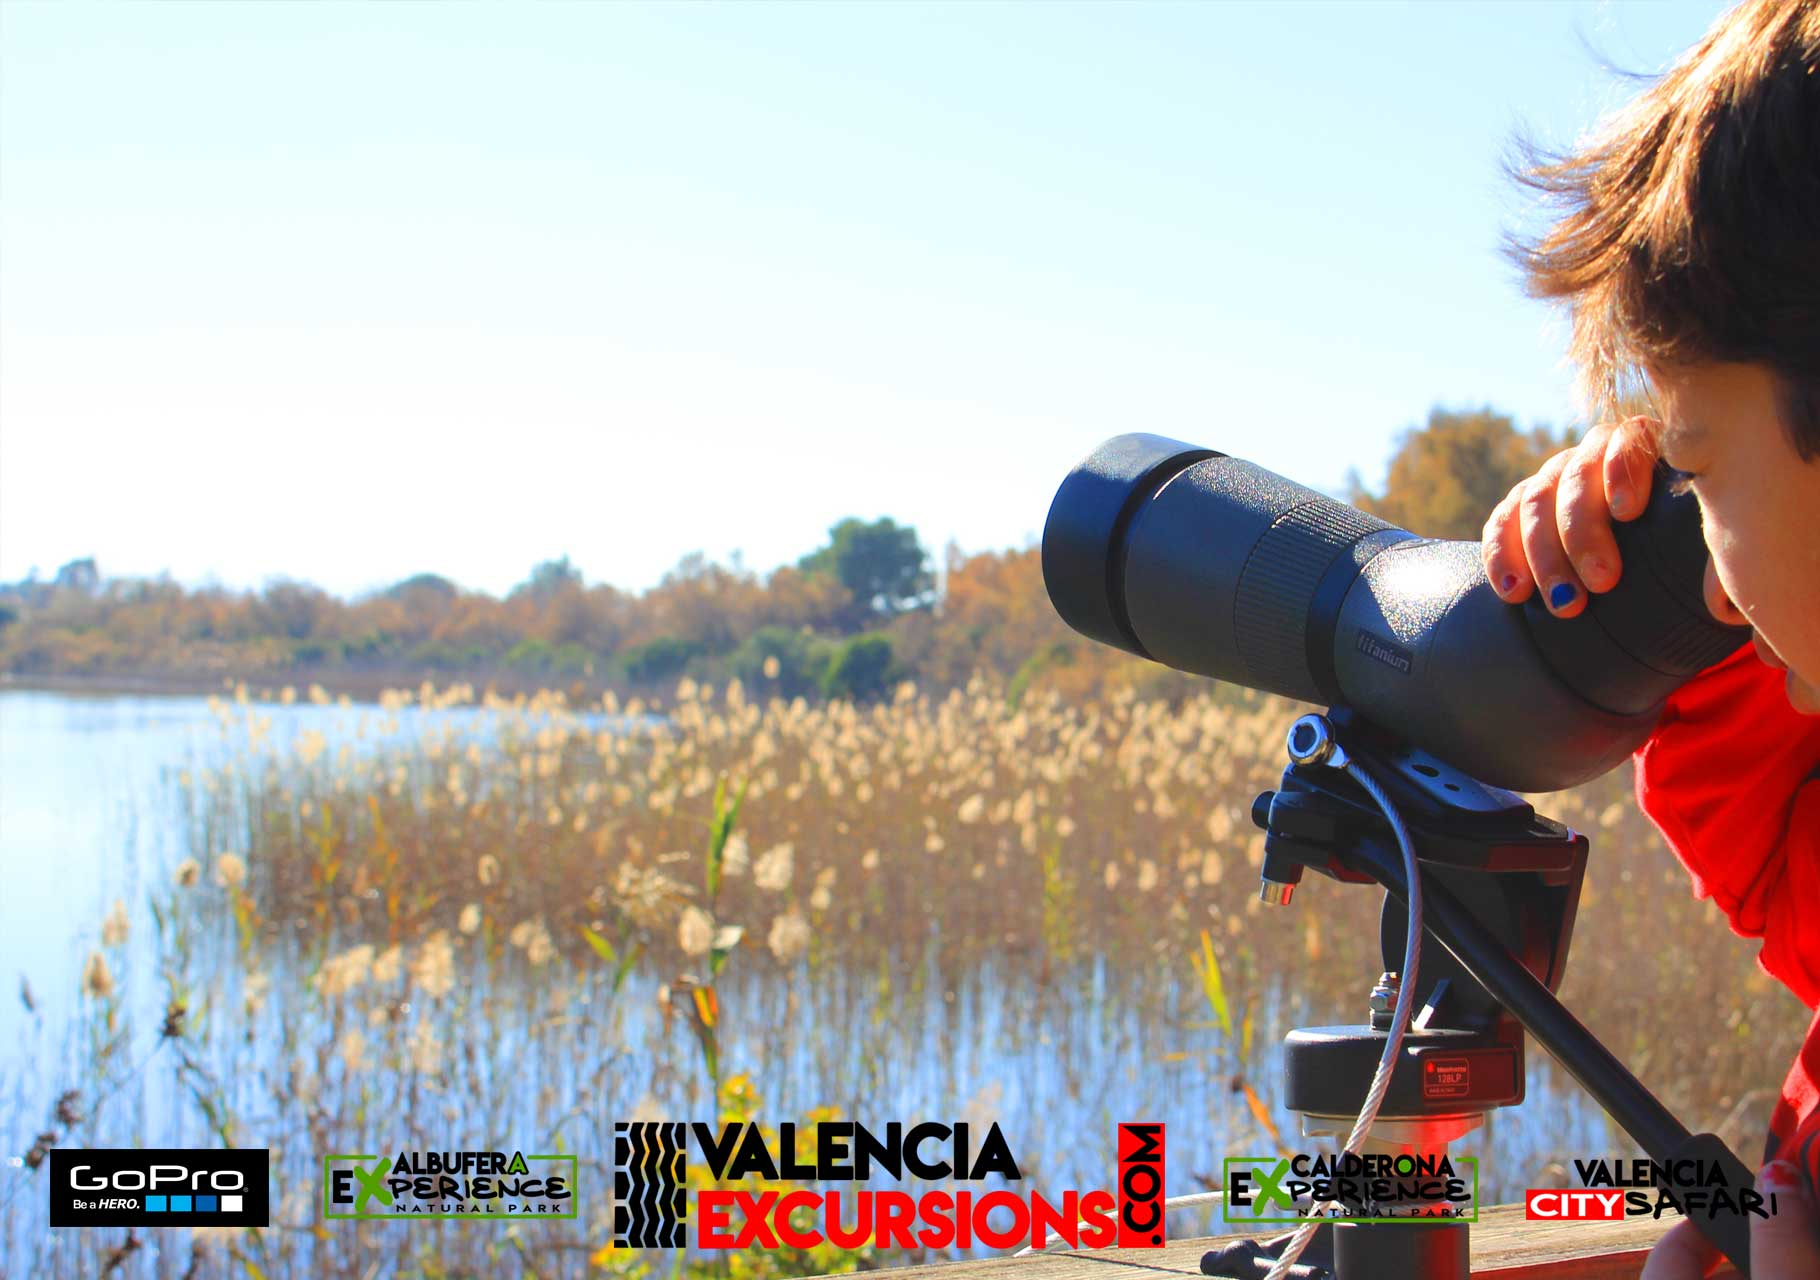 Birds of L'Albufera de Valencia. Discover the wild life in Albufera Lake with Albufera Experience jeep tour for families in Valencia www.valenciaexcursions.com